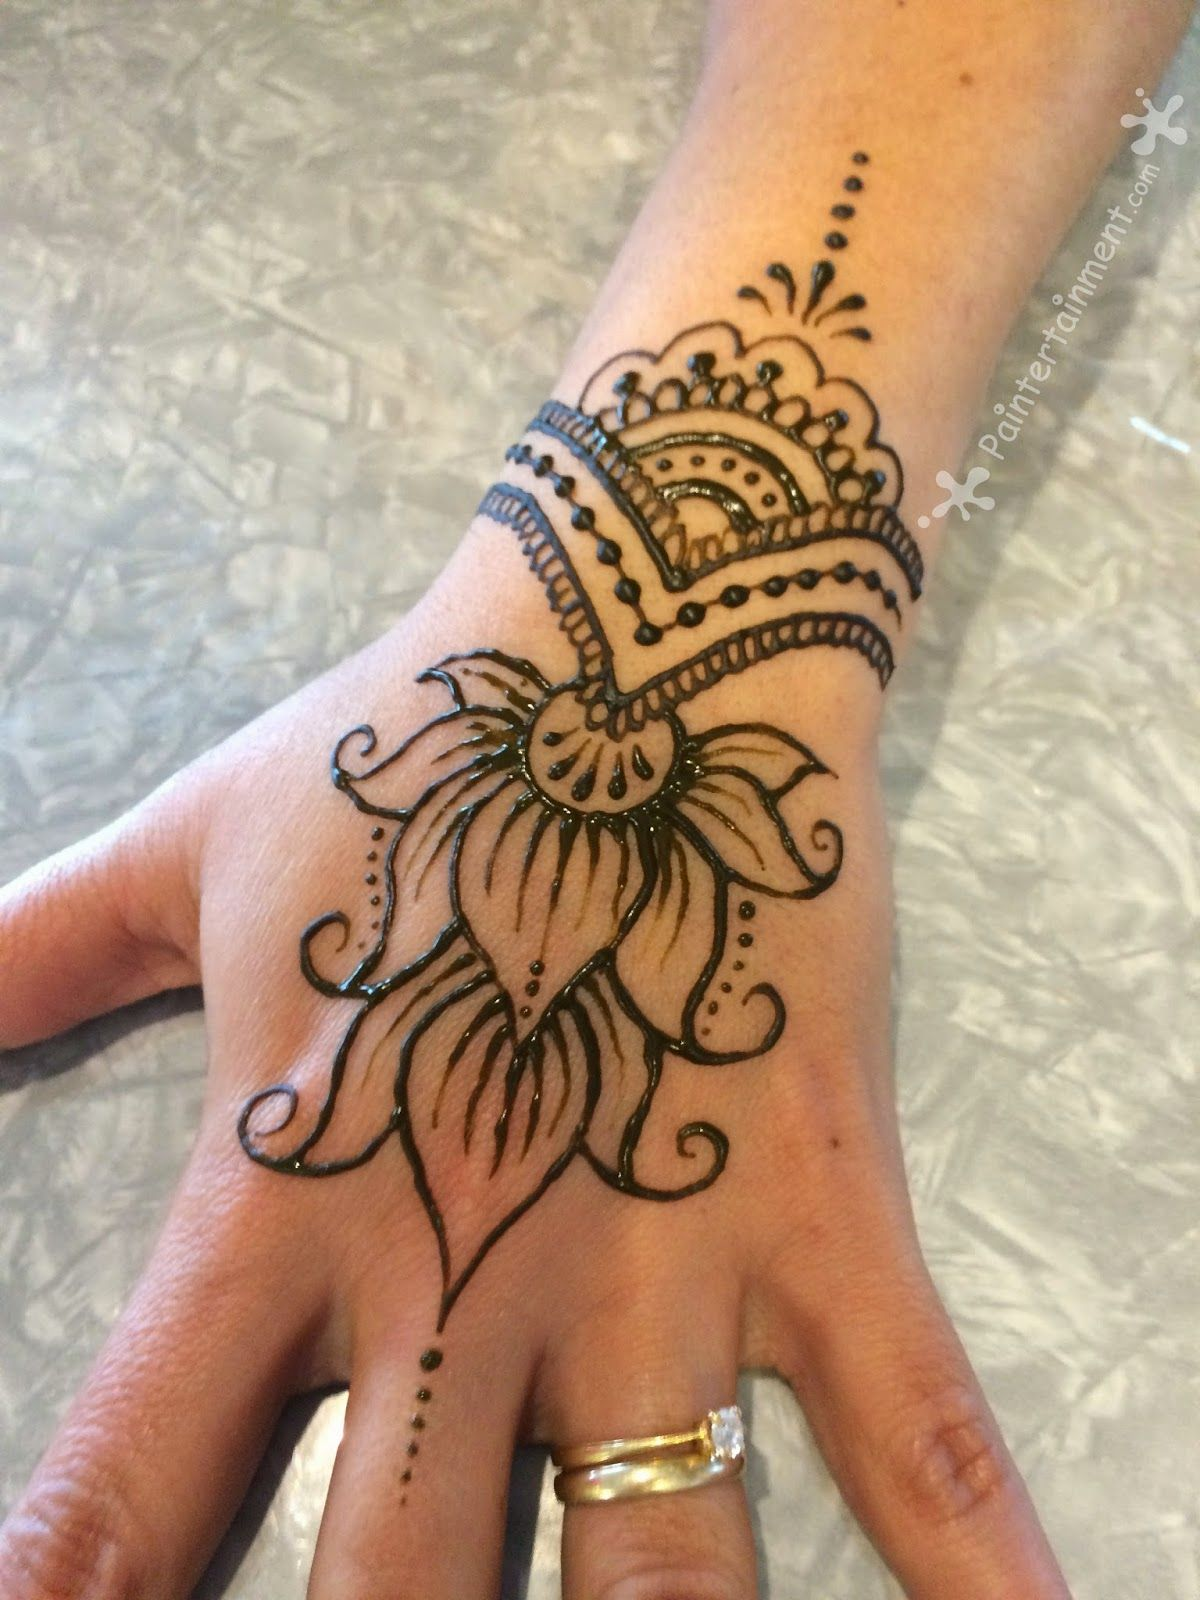 Simple Henna Tattoo Designs For Wrist: What I've Been Painting Lately...